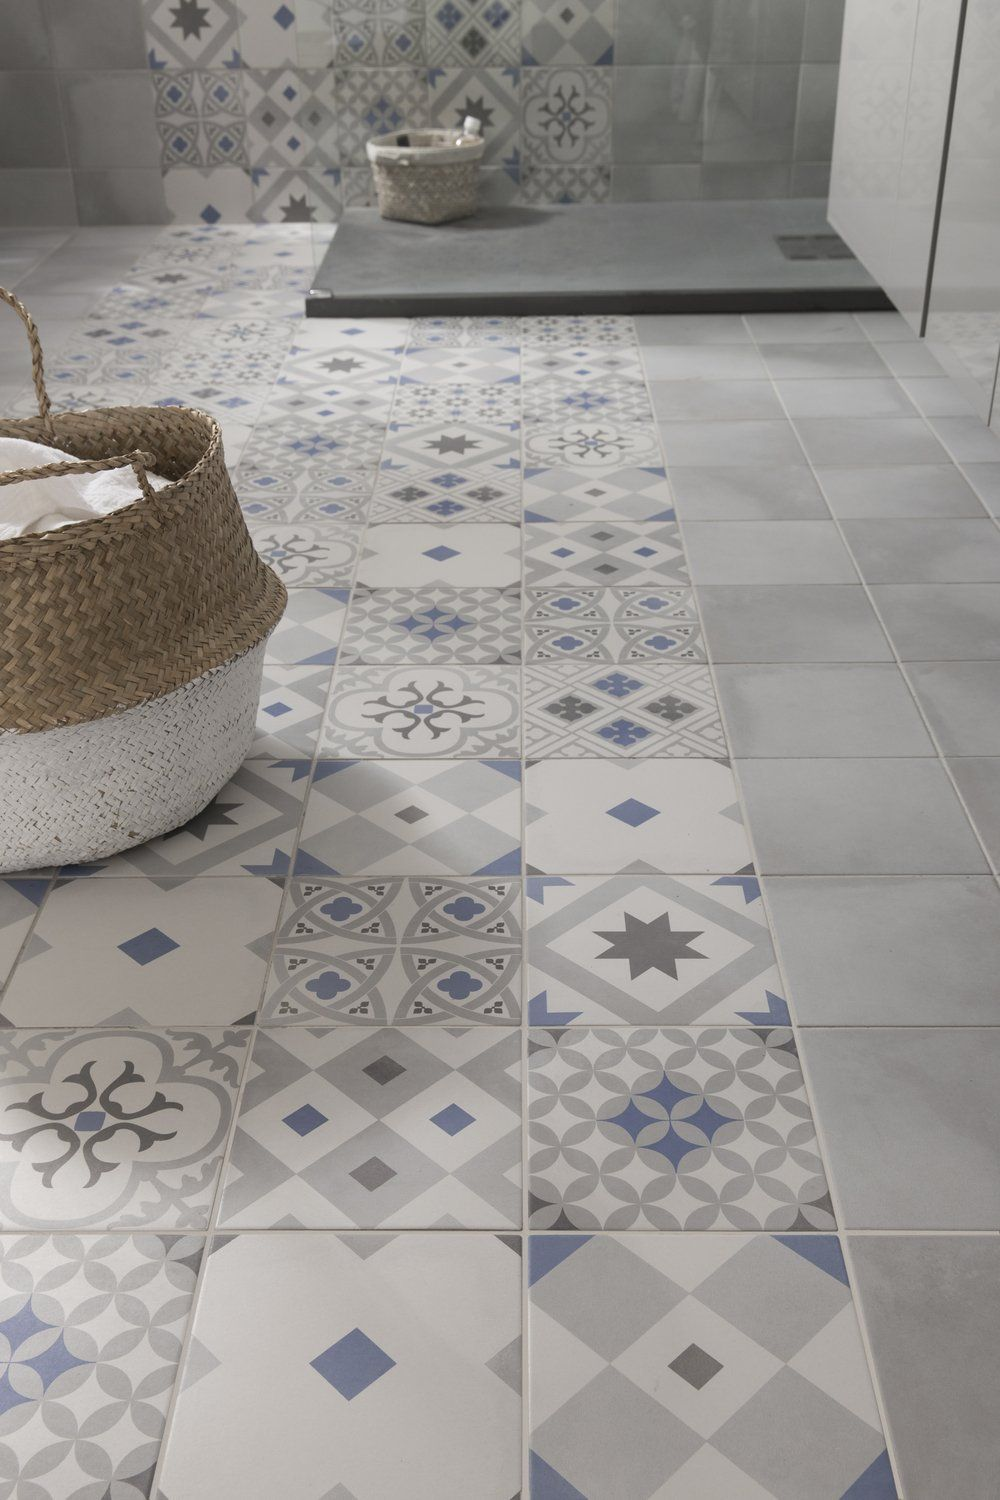 M lange de carrelage gris et de carreaux de ciment wc for Carrelage wc gris